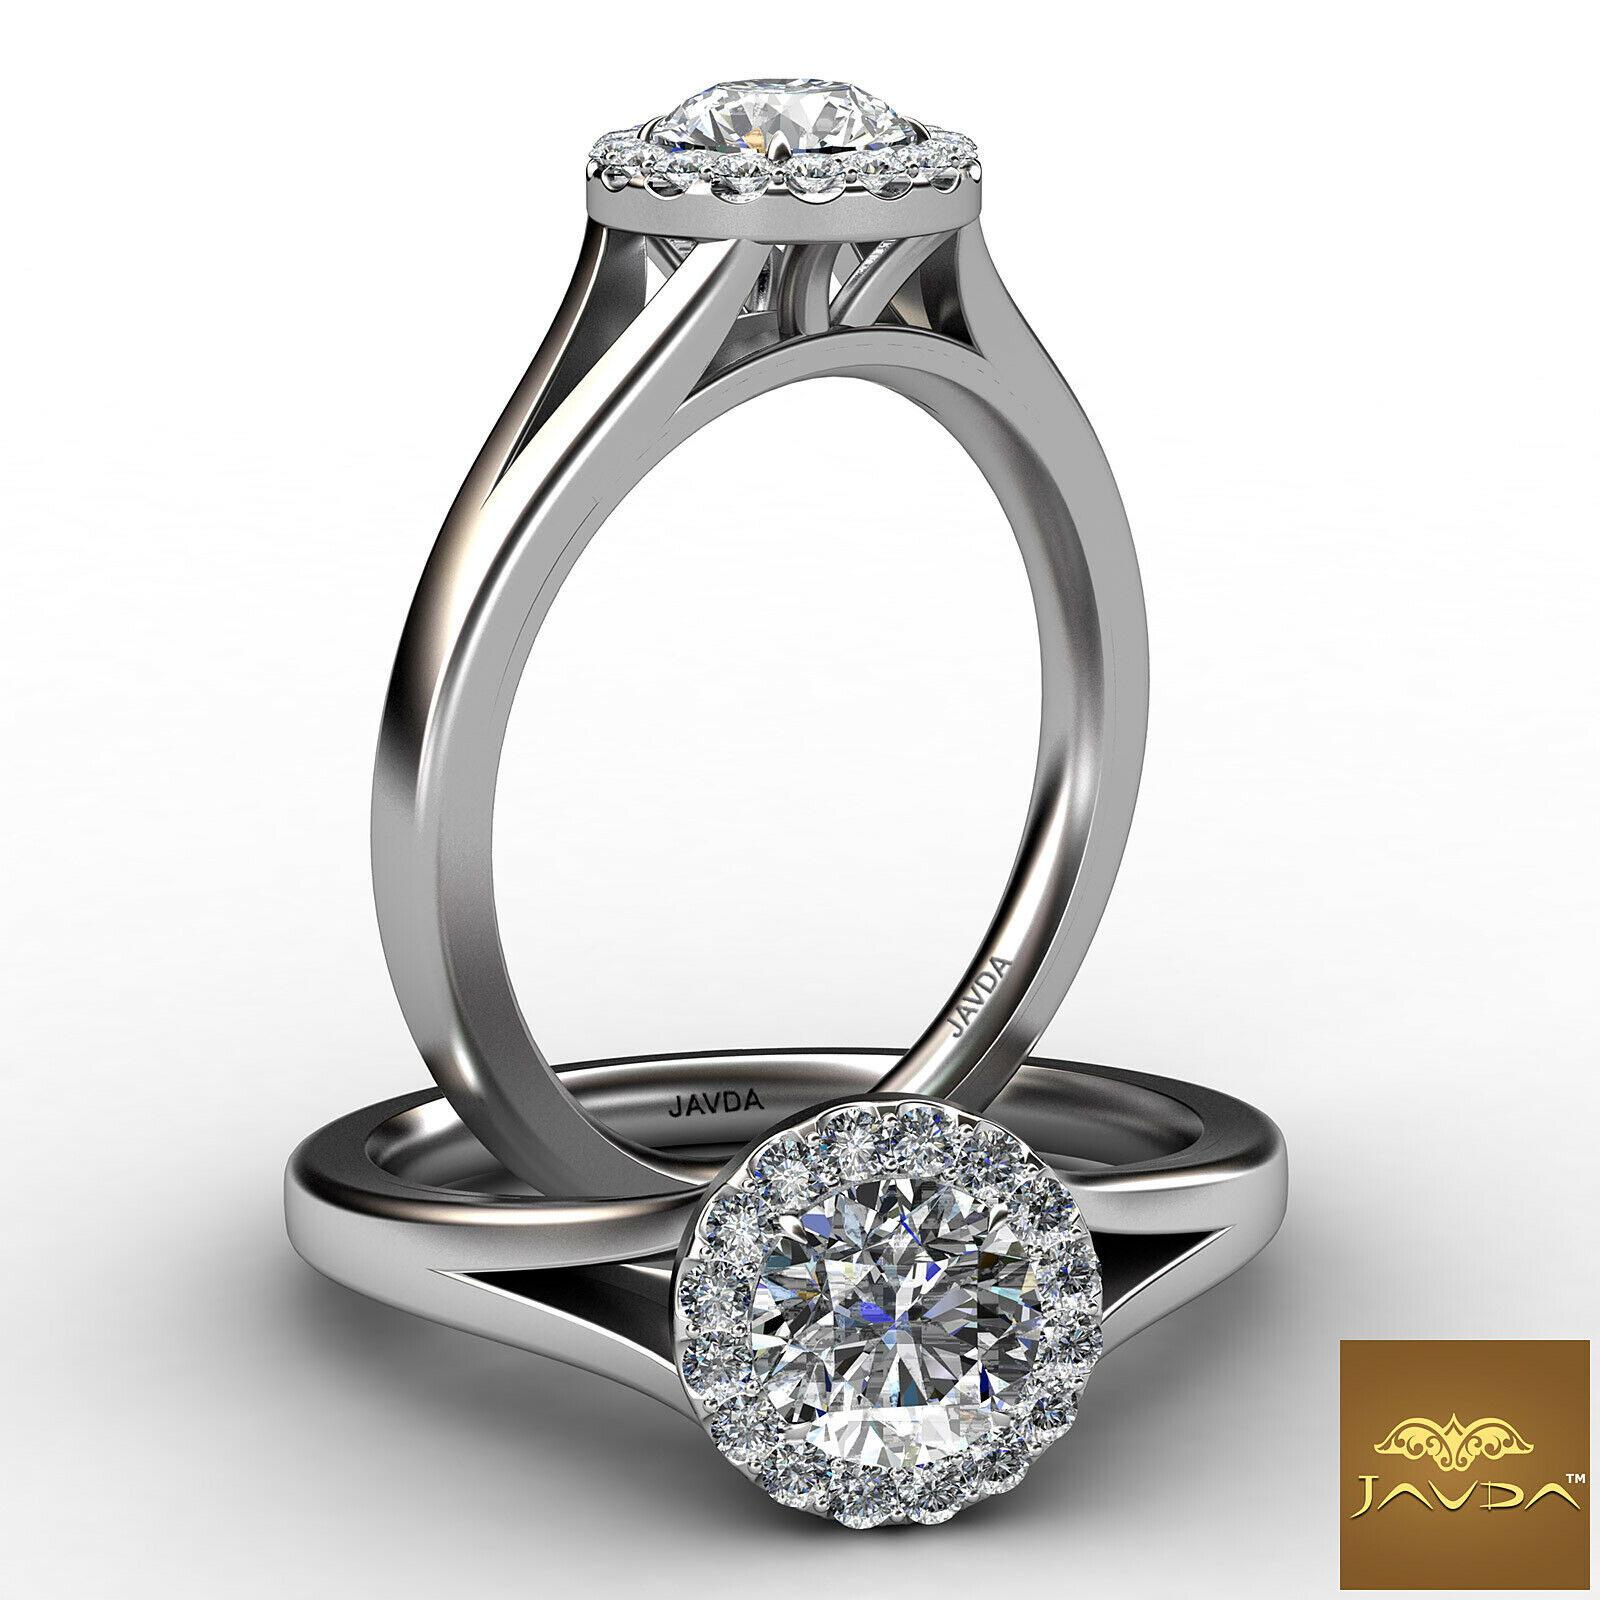 French Pave Round Diamond Engagement Split Shank Ring GIA F VS2 Clarity 0.7 Ct